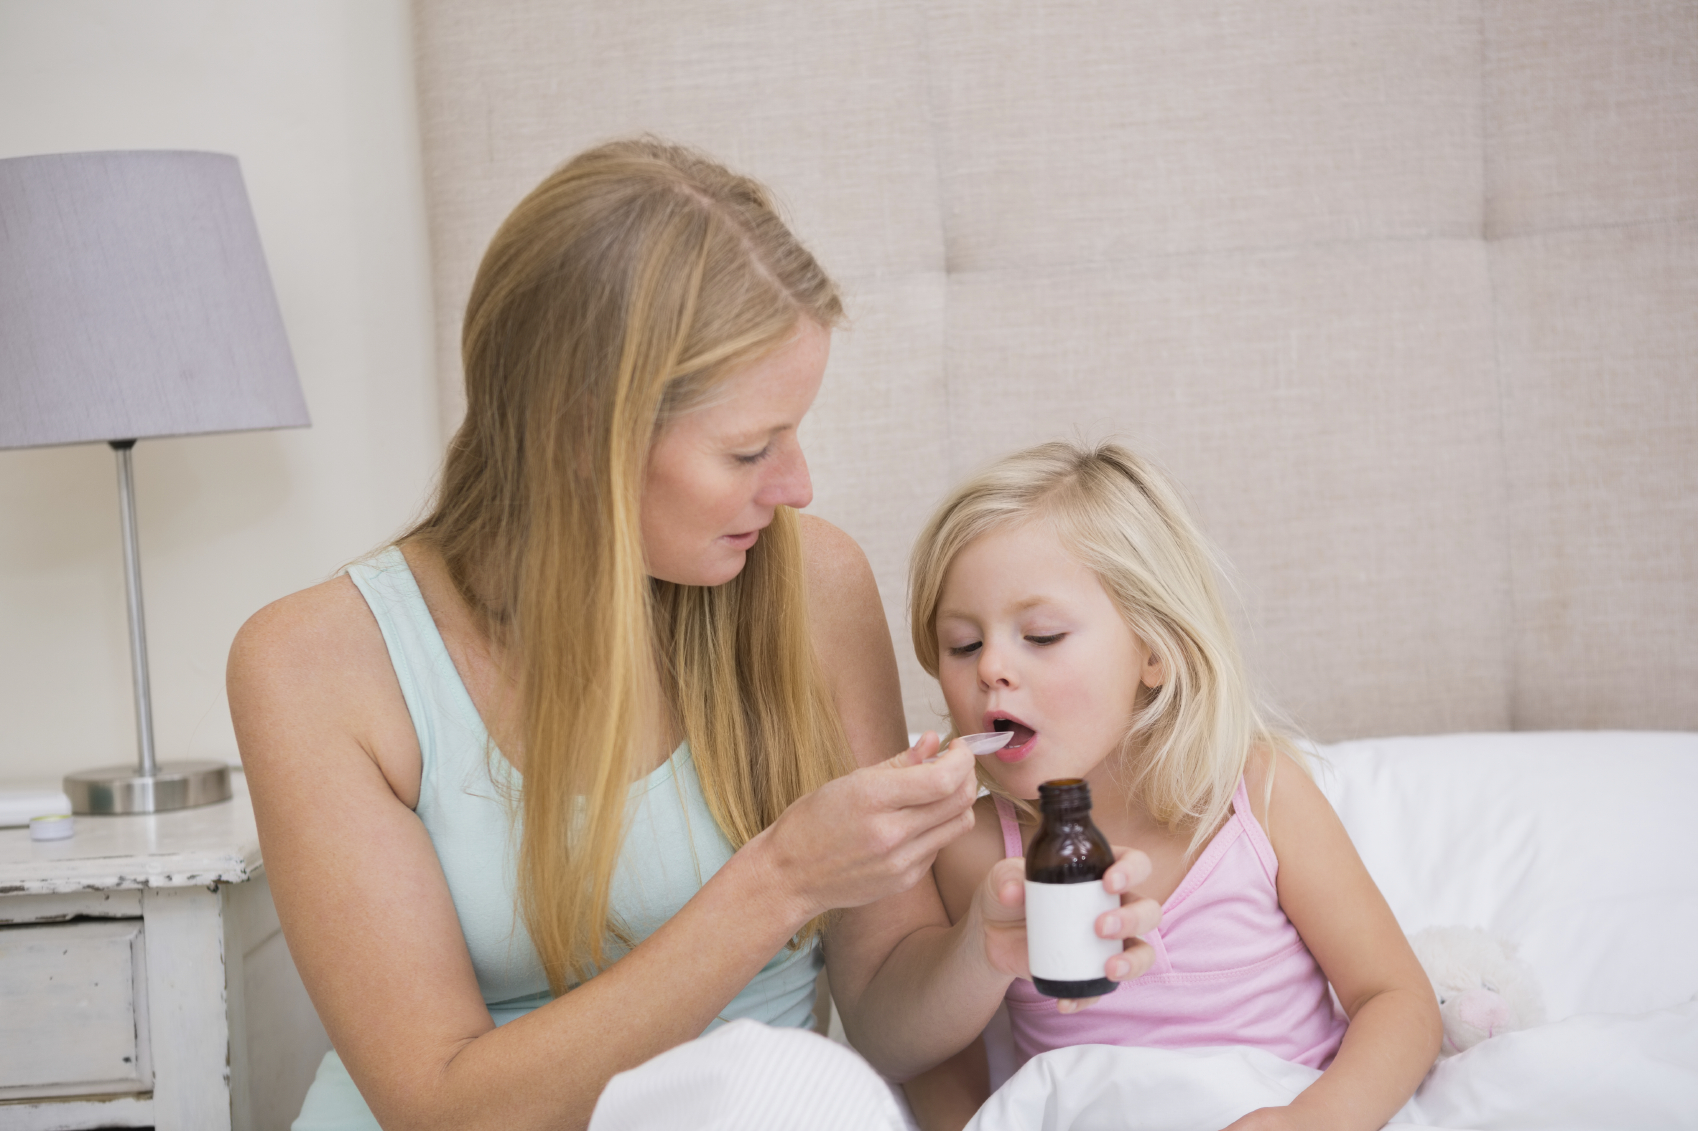 6 Common Childhood Illnesses Every Parent Should Know About